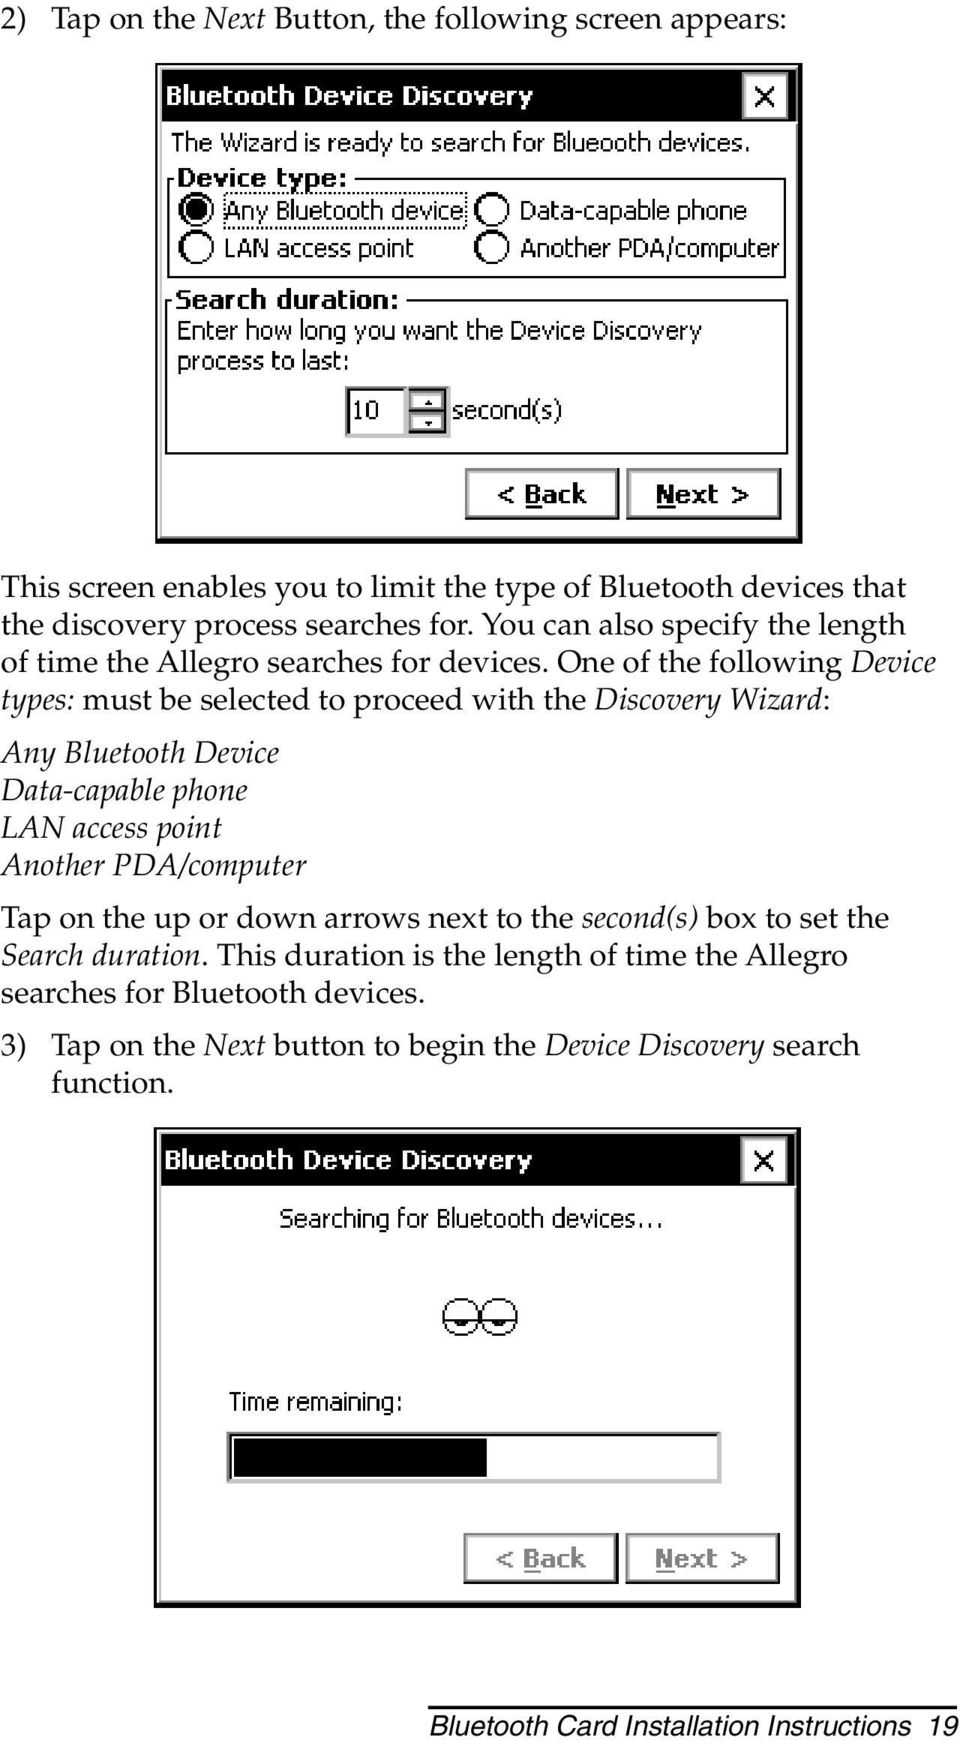 One of the following Device types: must be selected to proceed with the Discovery Wizard: Any Bluetooth Device Data-capable phone LAN access point Another PDA/computer